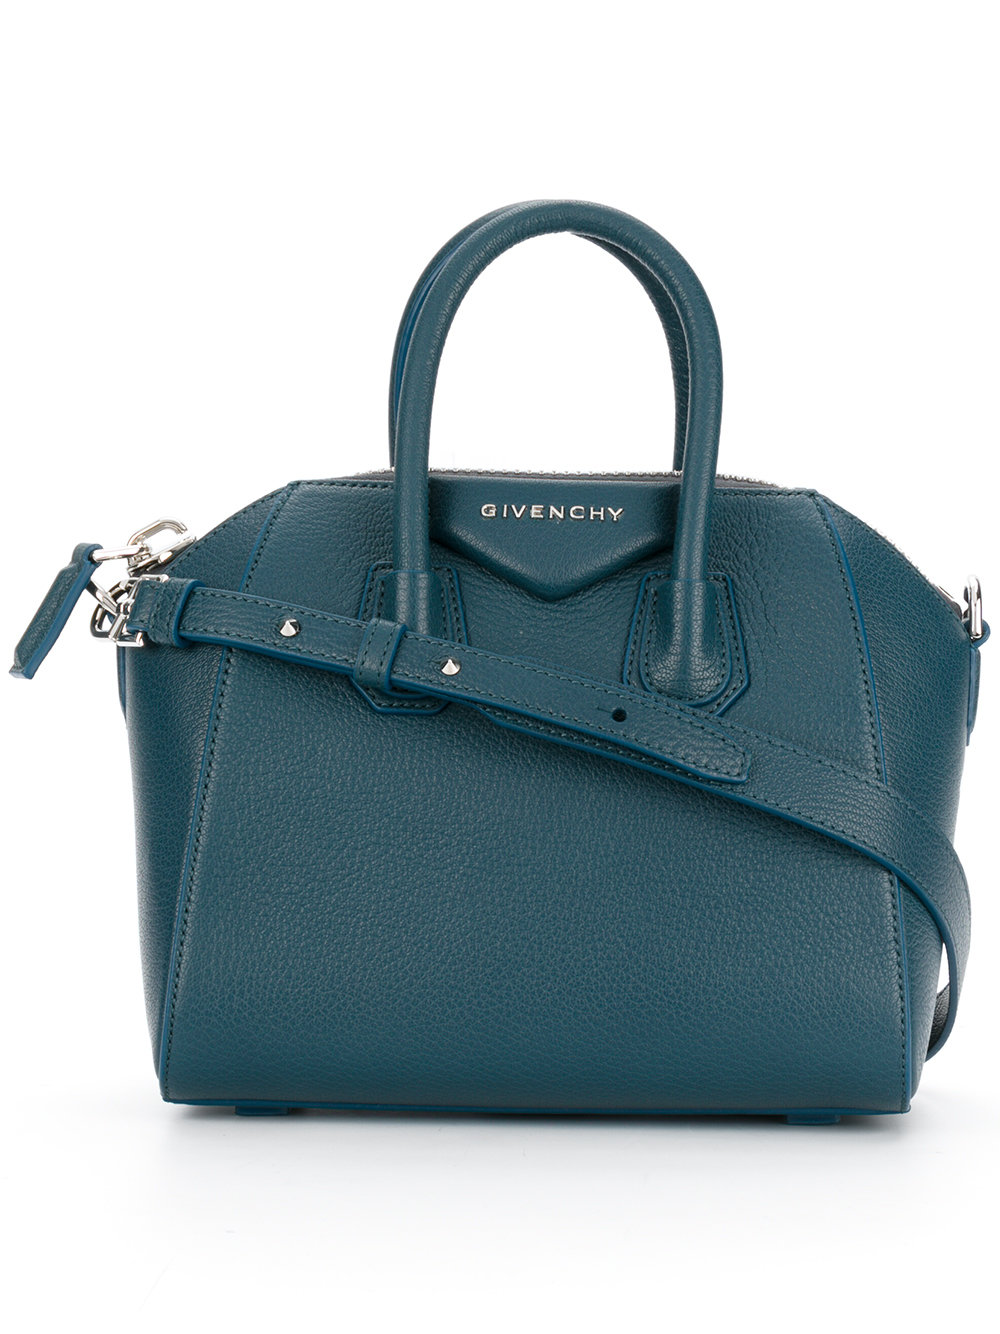 Givenchy ANTIGONA MINI